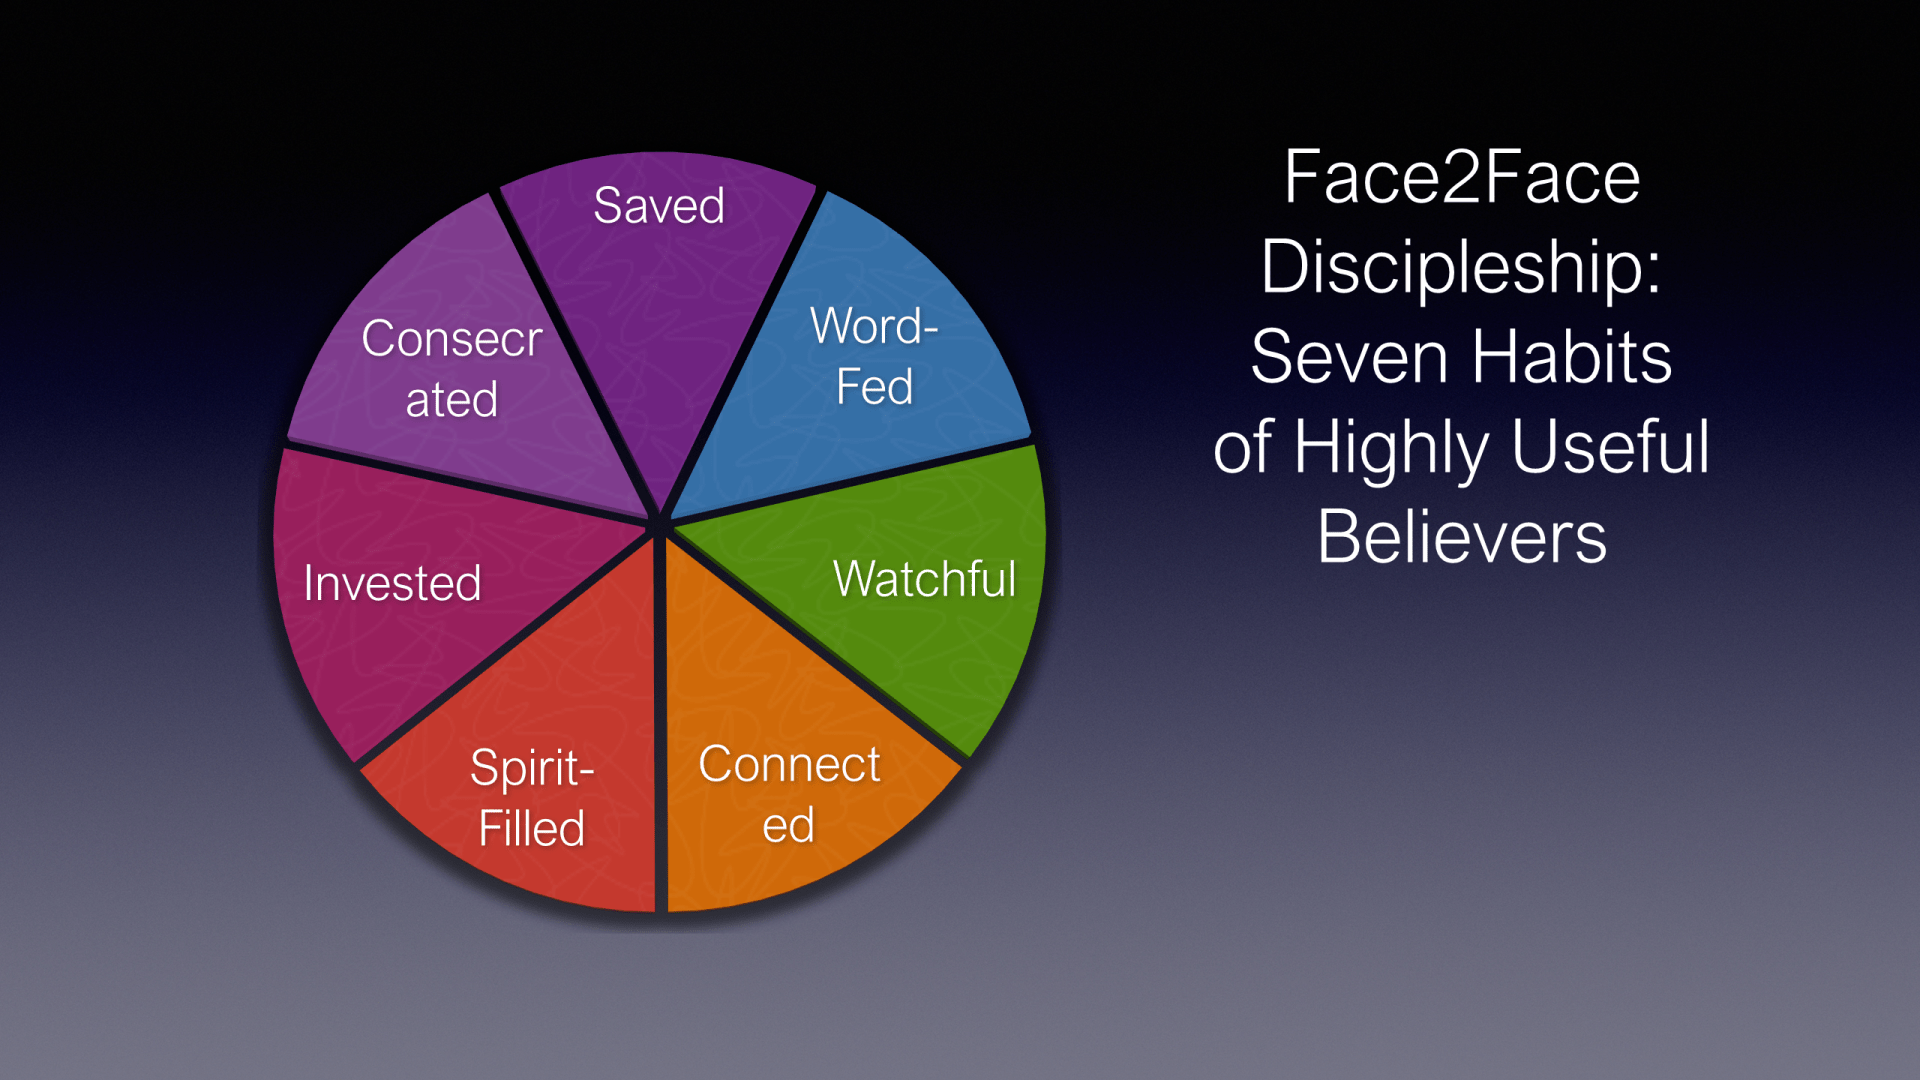 FTF-15 - Face2Face Discipleship - 7 Habits Of Highly Useful Believers (6)